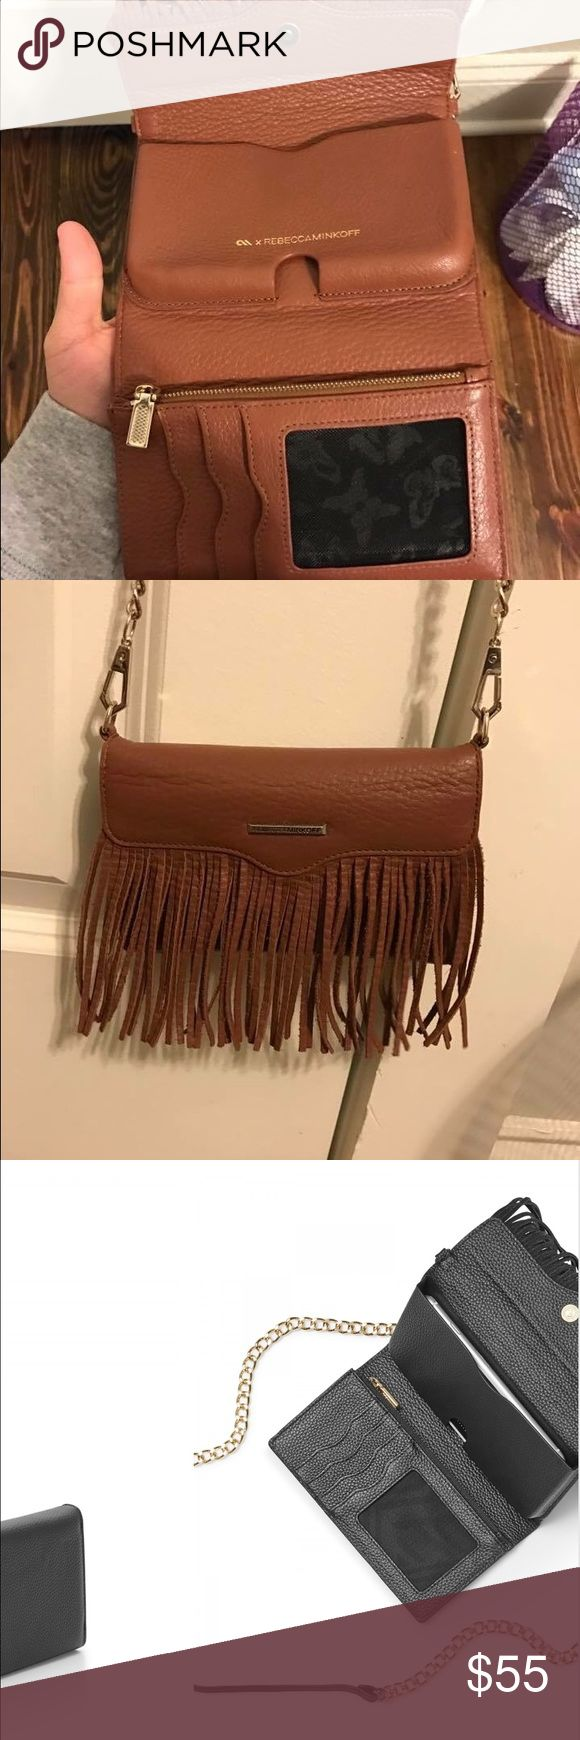 Rebecca Minkoff Fringe Tech Purse Holds iPhone 6 or 6s, used one or two times, great condition just got a new phone that doesn't fit Rebecca Minkoff Bags Mini Bags